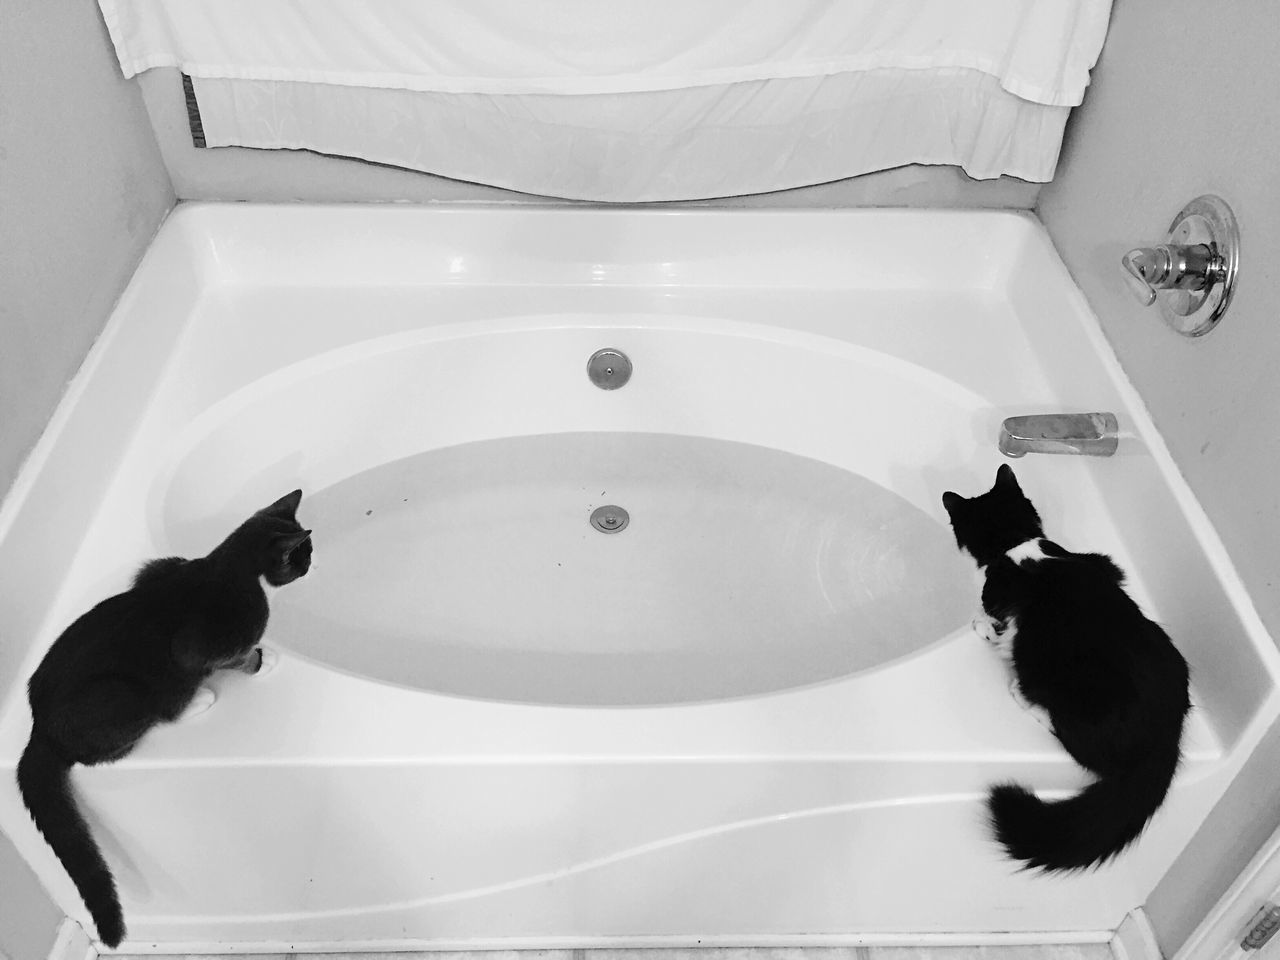 High Angle View Of Cats On Bathtub